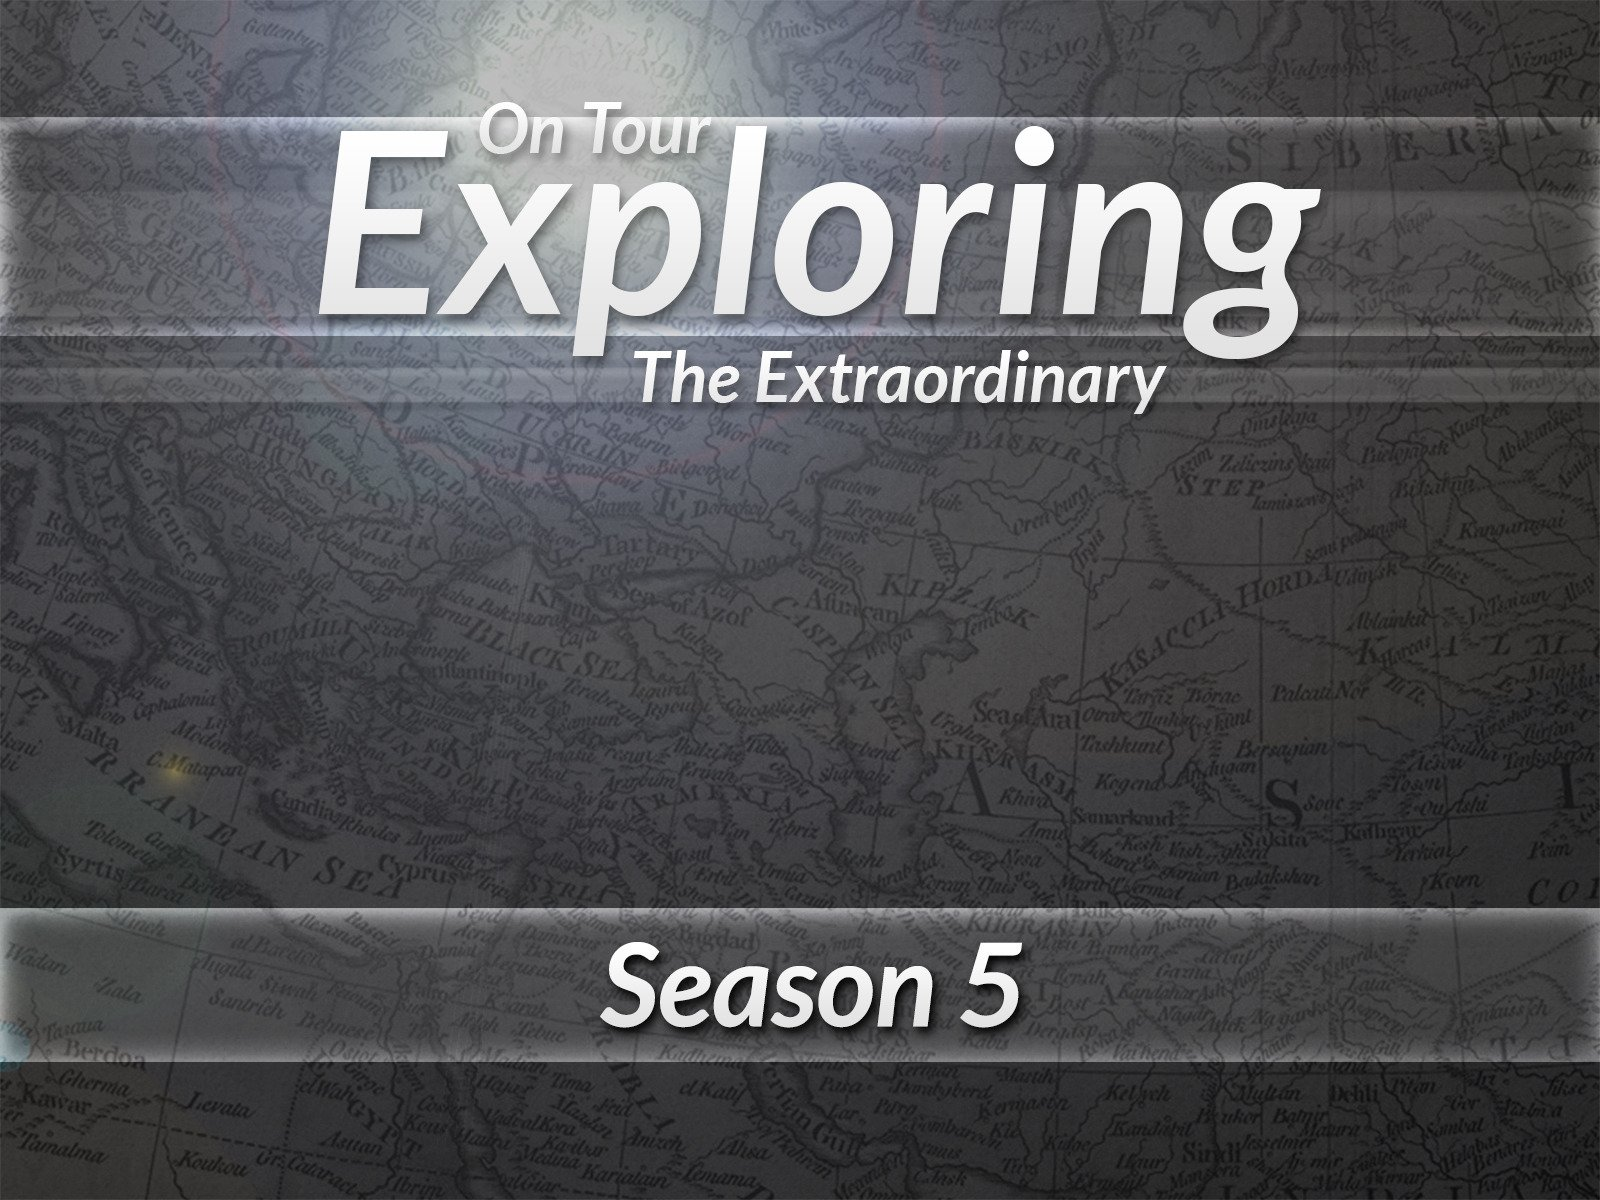 On Tour: Exploring the Extraordinary - Season 5